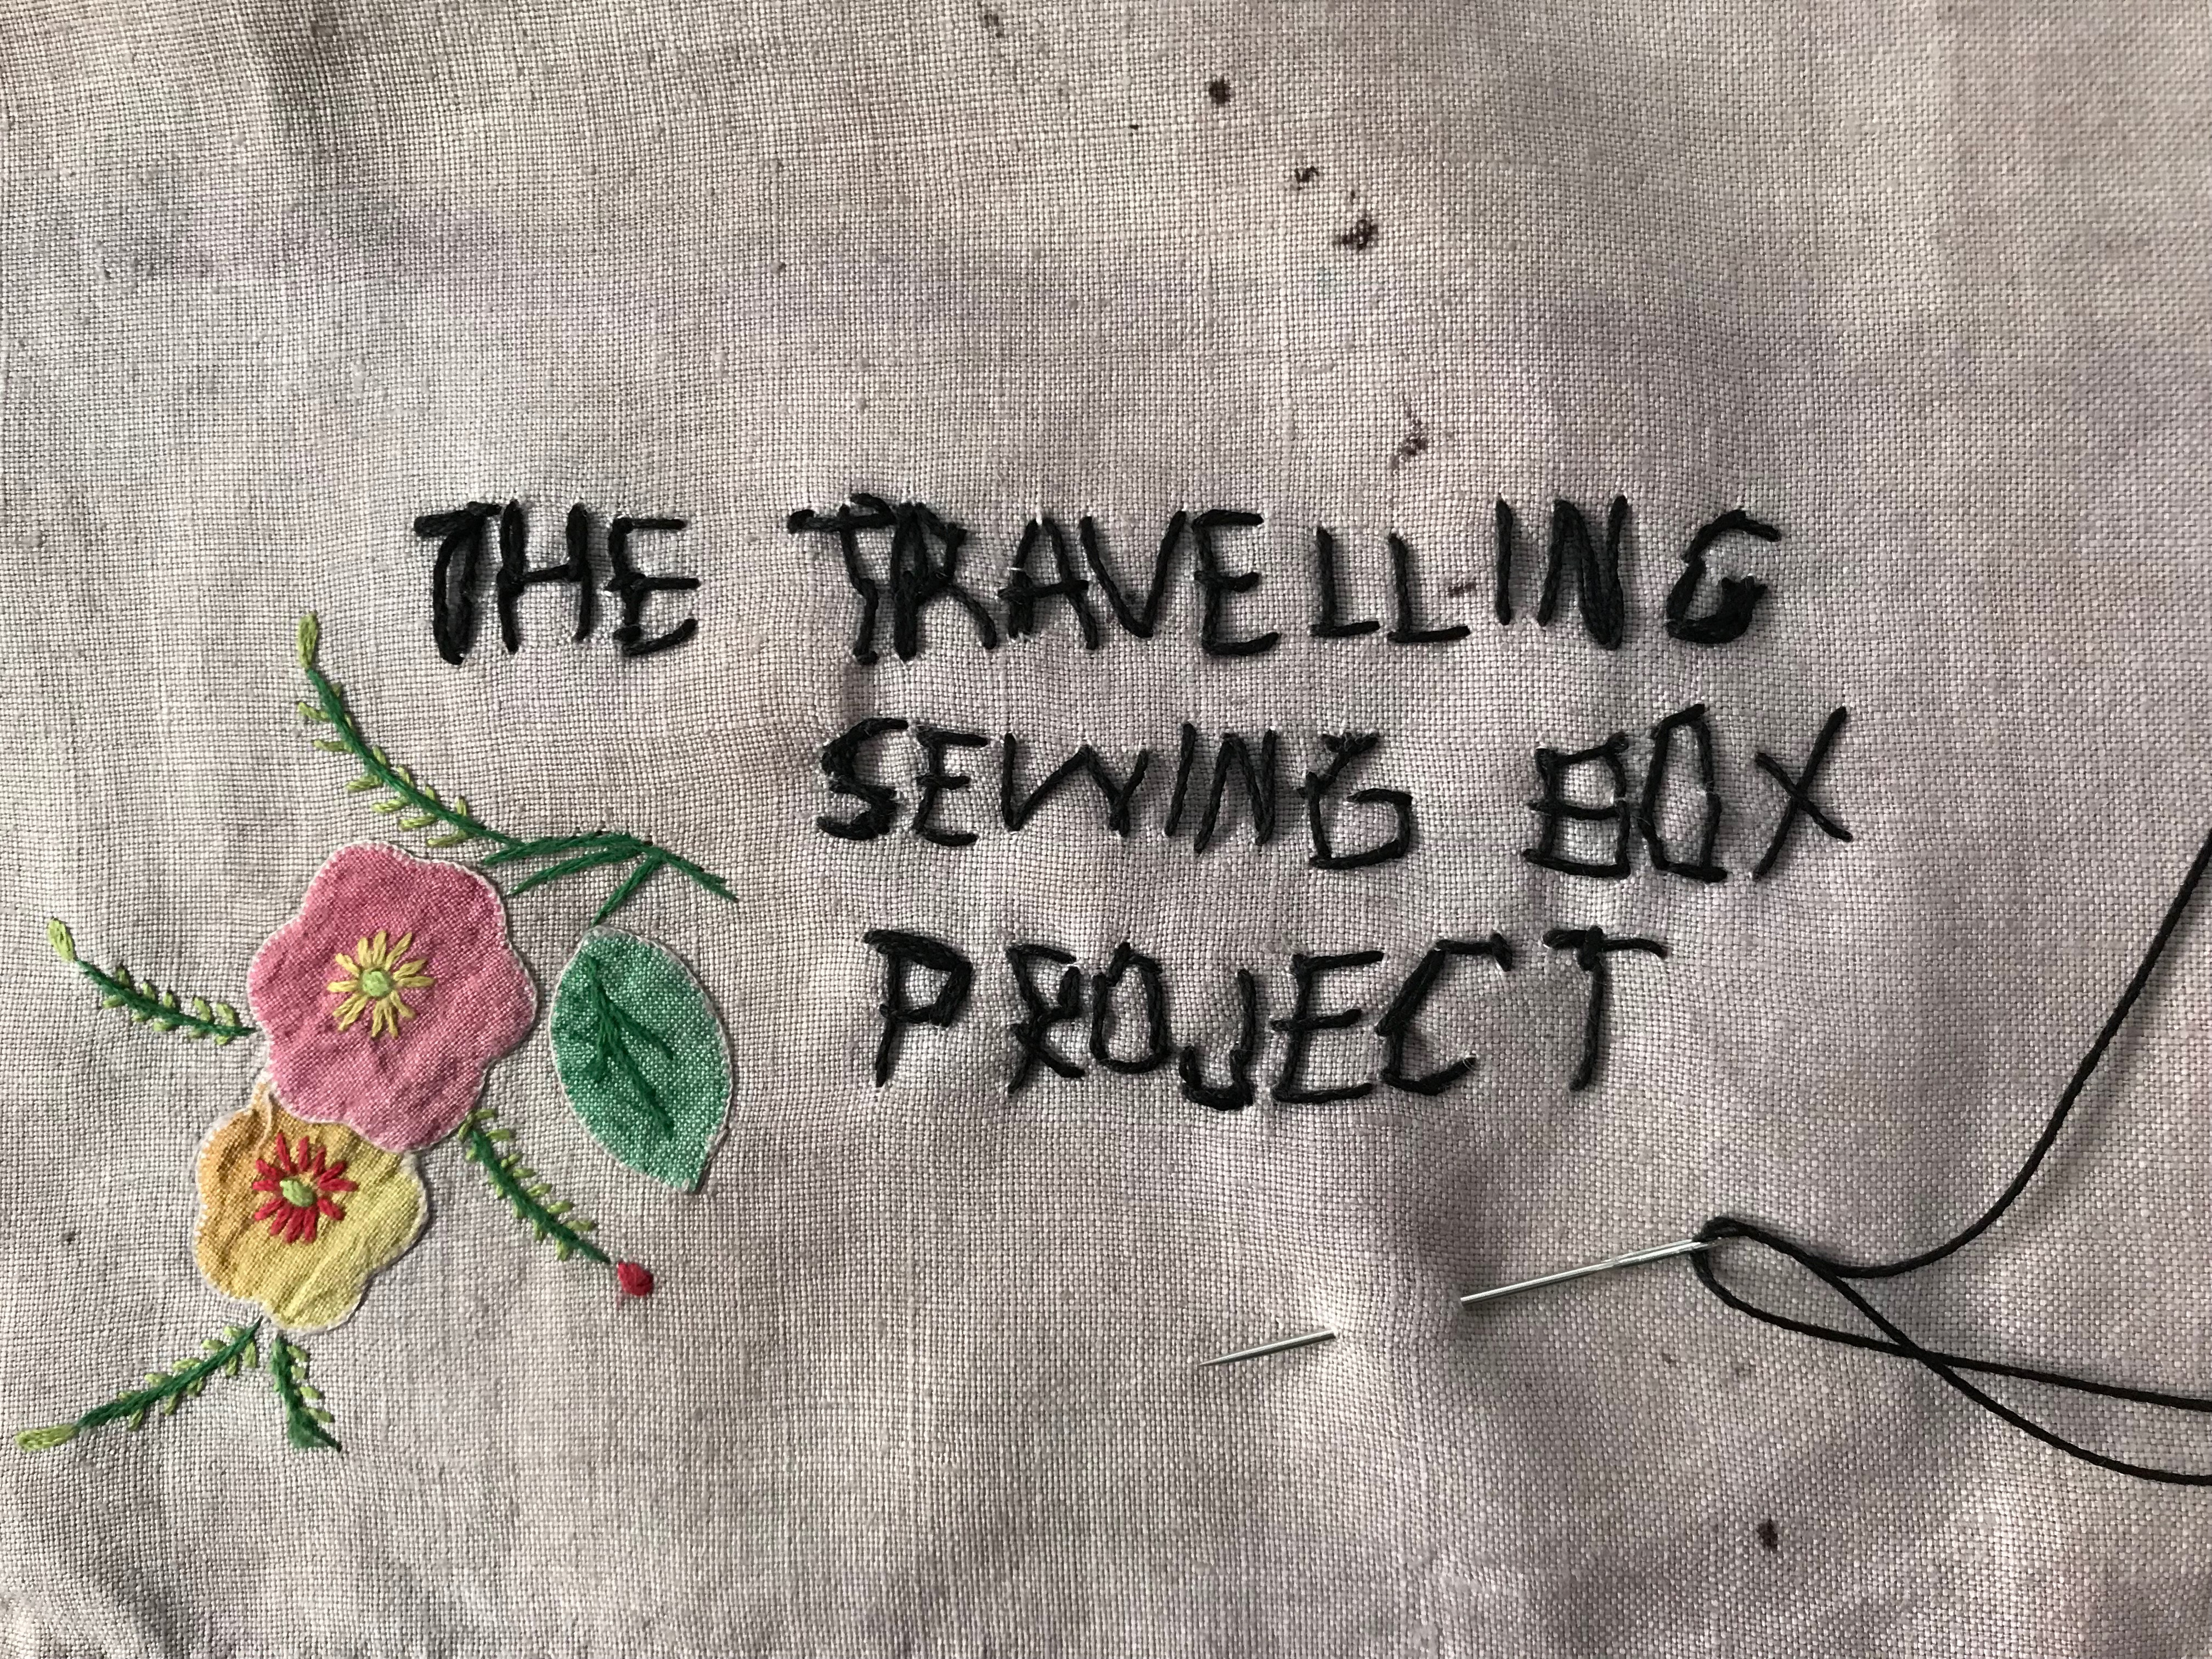 Travelling Sewing Box Project ©